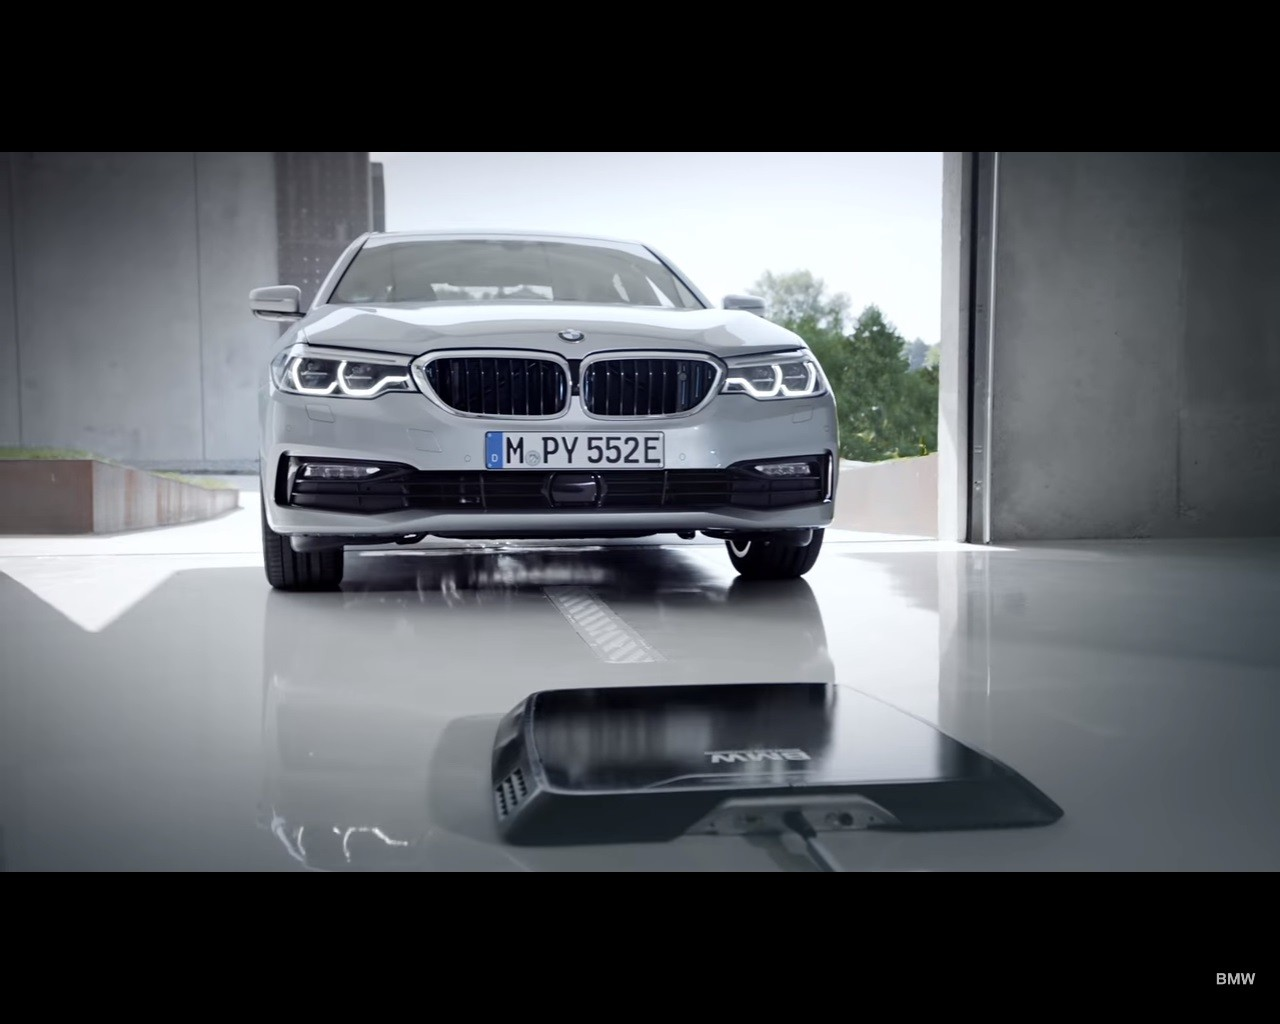 ev wireless charging goes oem with bmw 530e iperformance. Black Bedroom Furniture Sets. Home Design Ideas